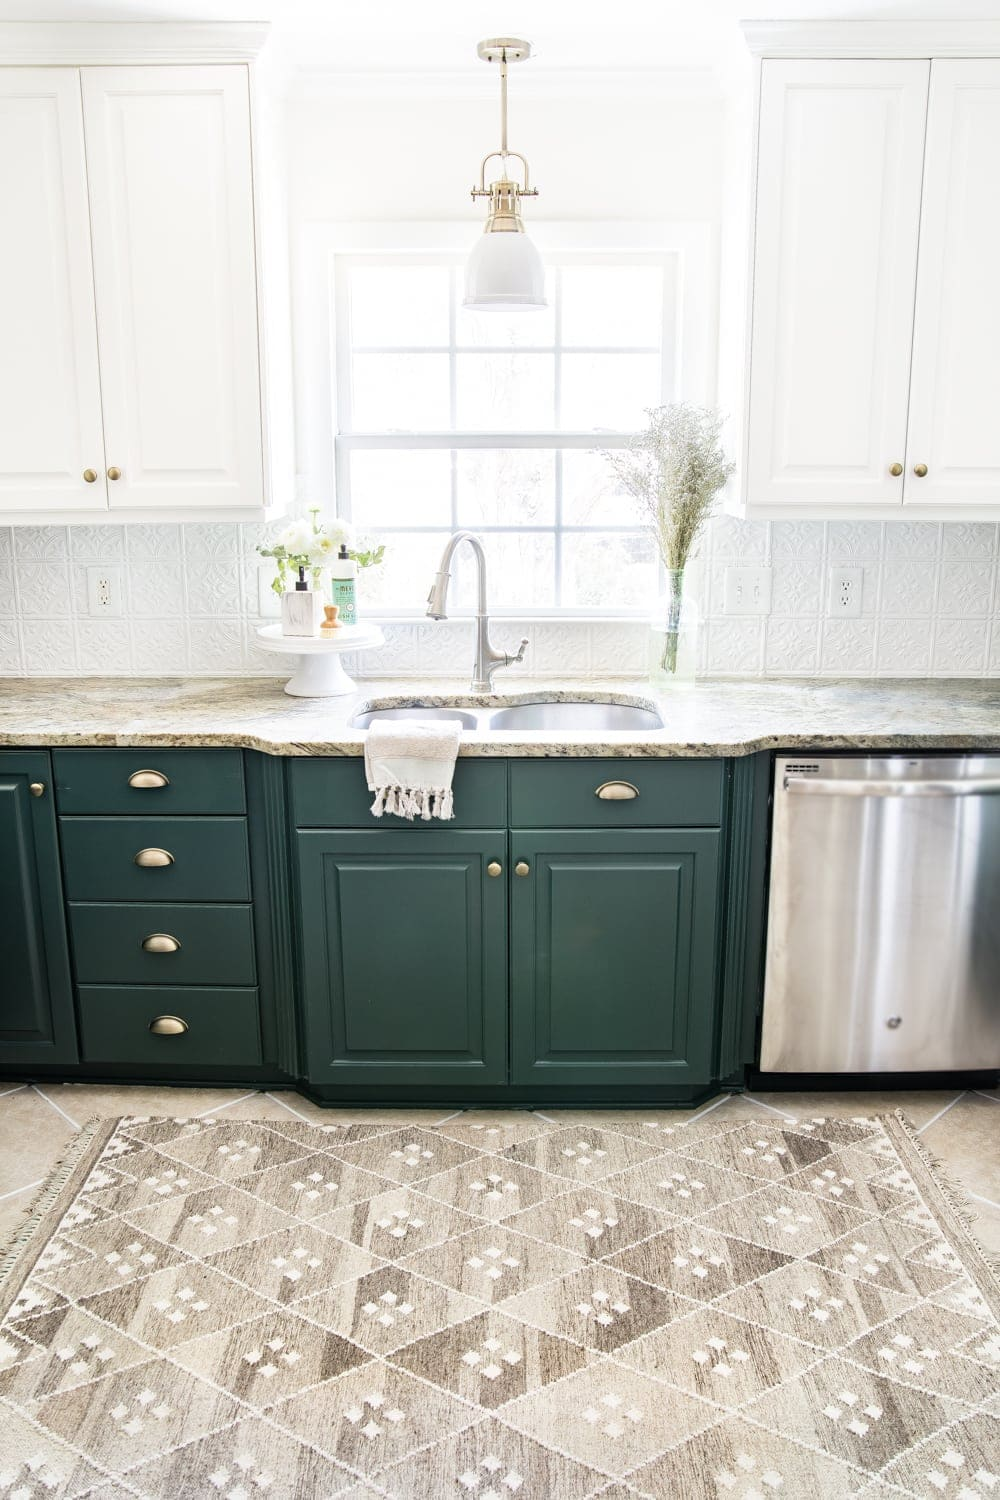 deep green kitchen cabinets with DIY pressed tin ceiling tile backsplash and layered memory foam kitchen rug